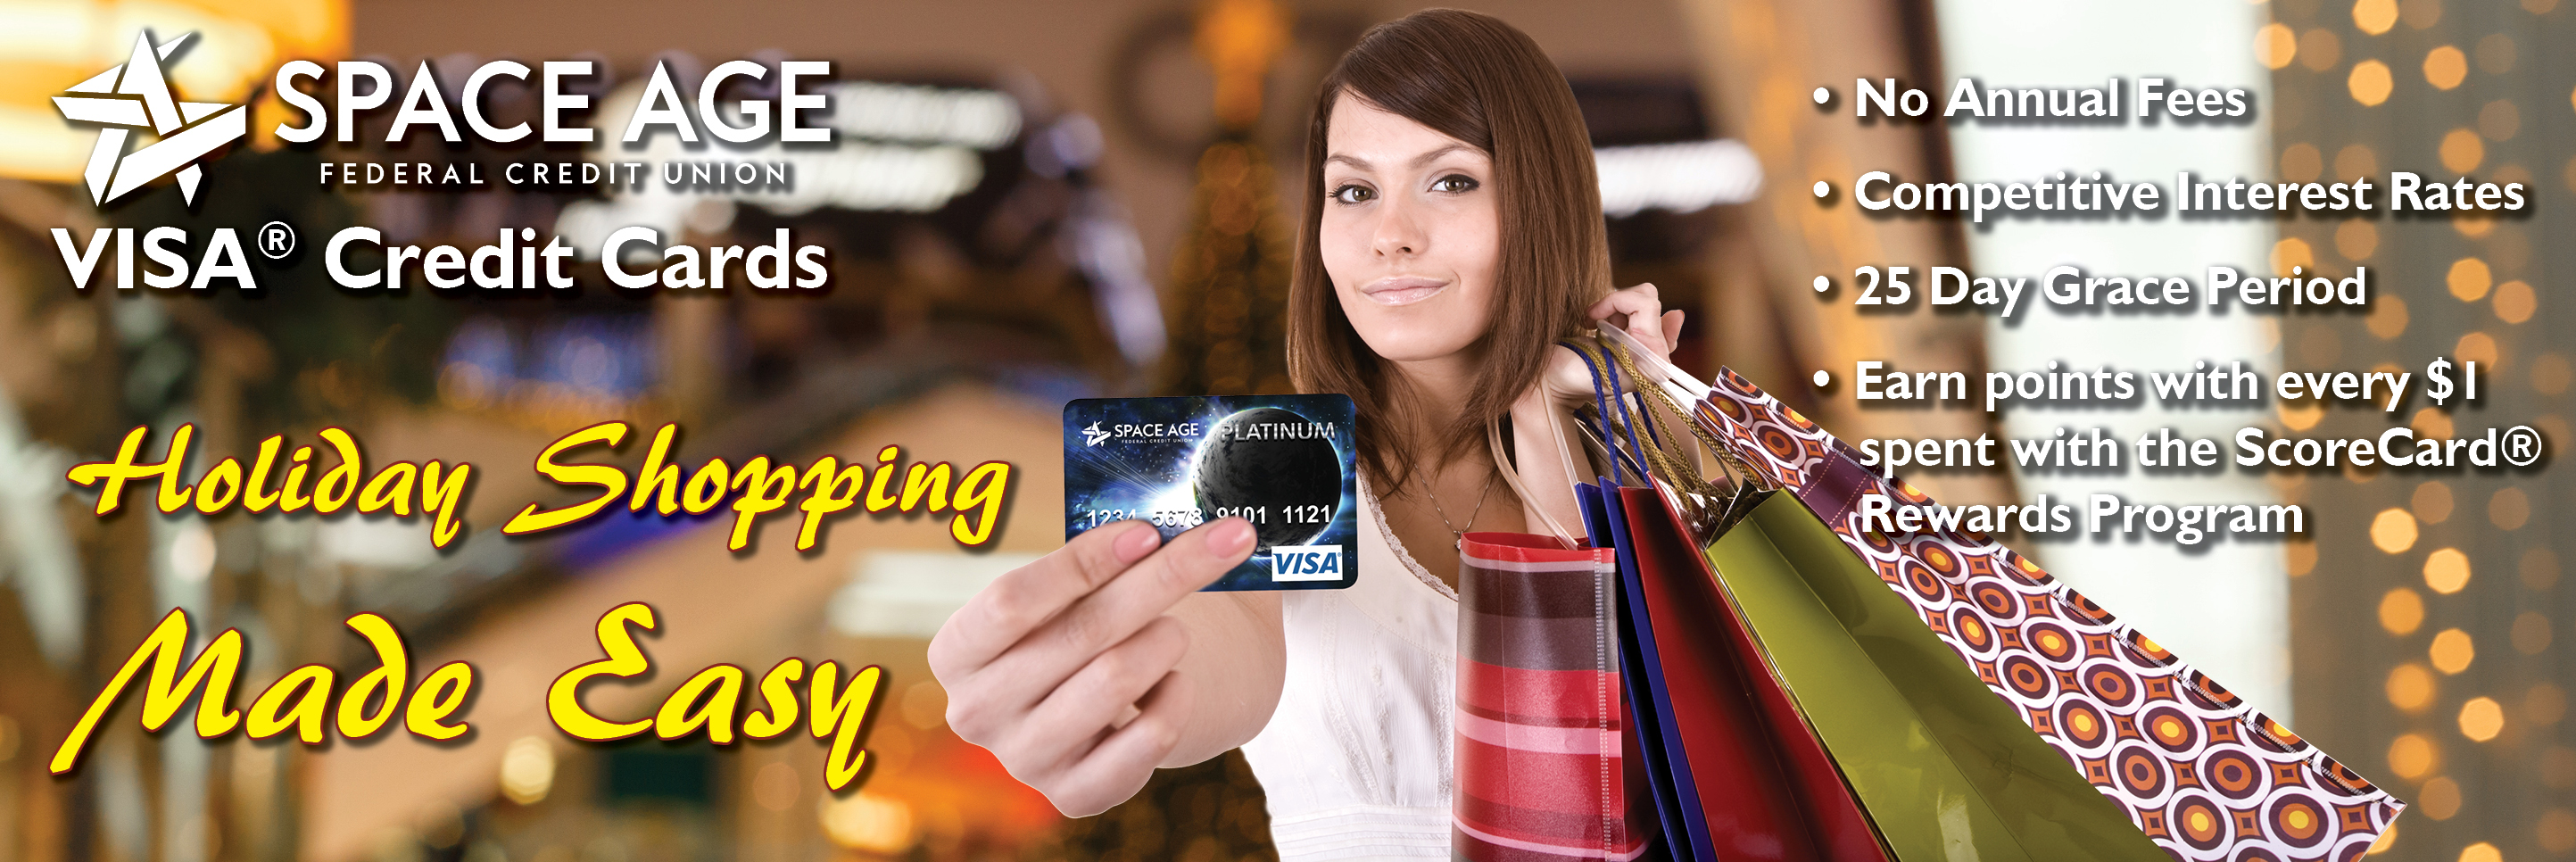 Holiday Shopping Made Easy with Visa Credit Cards